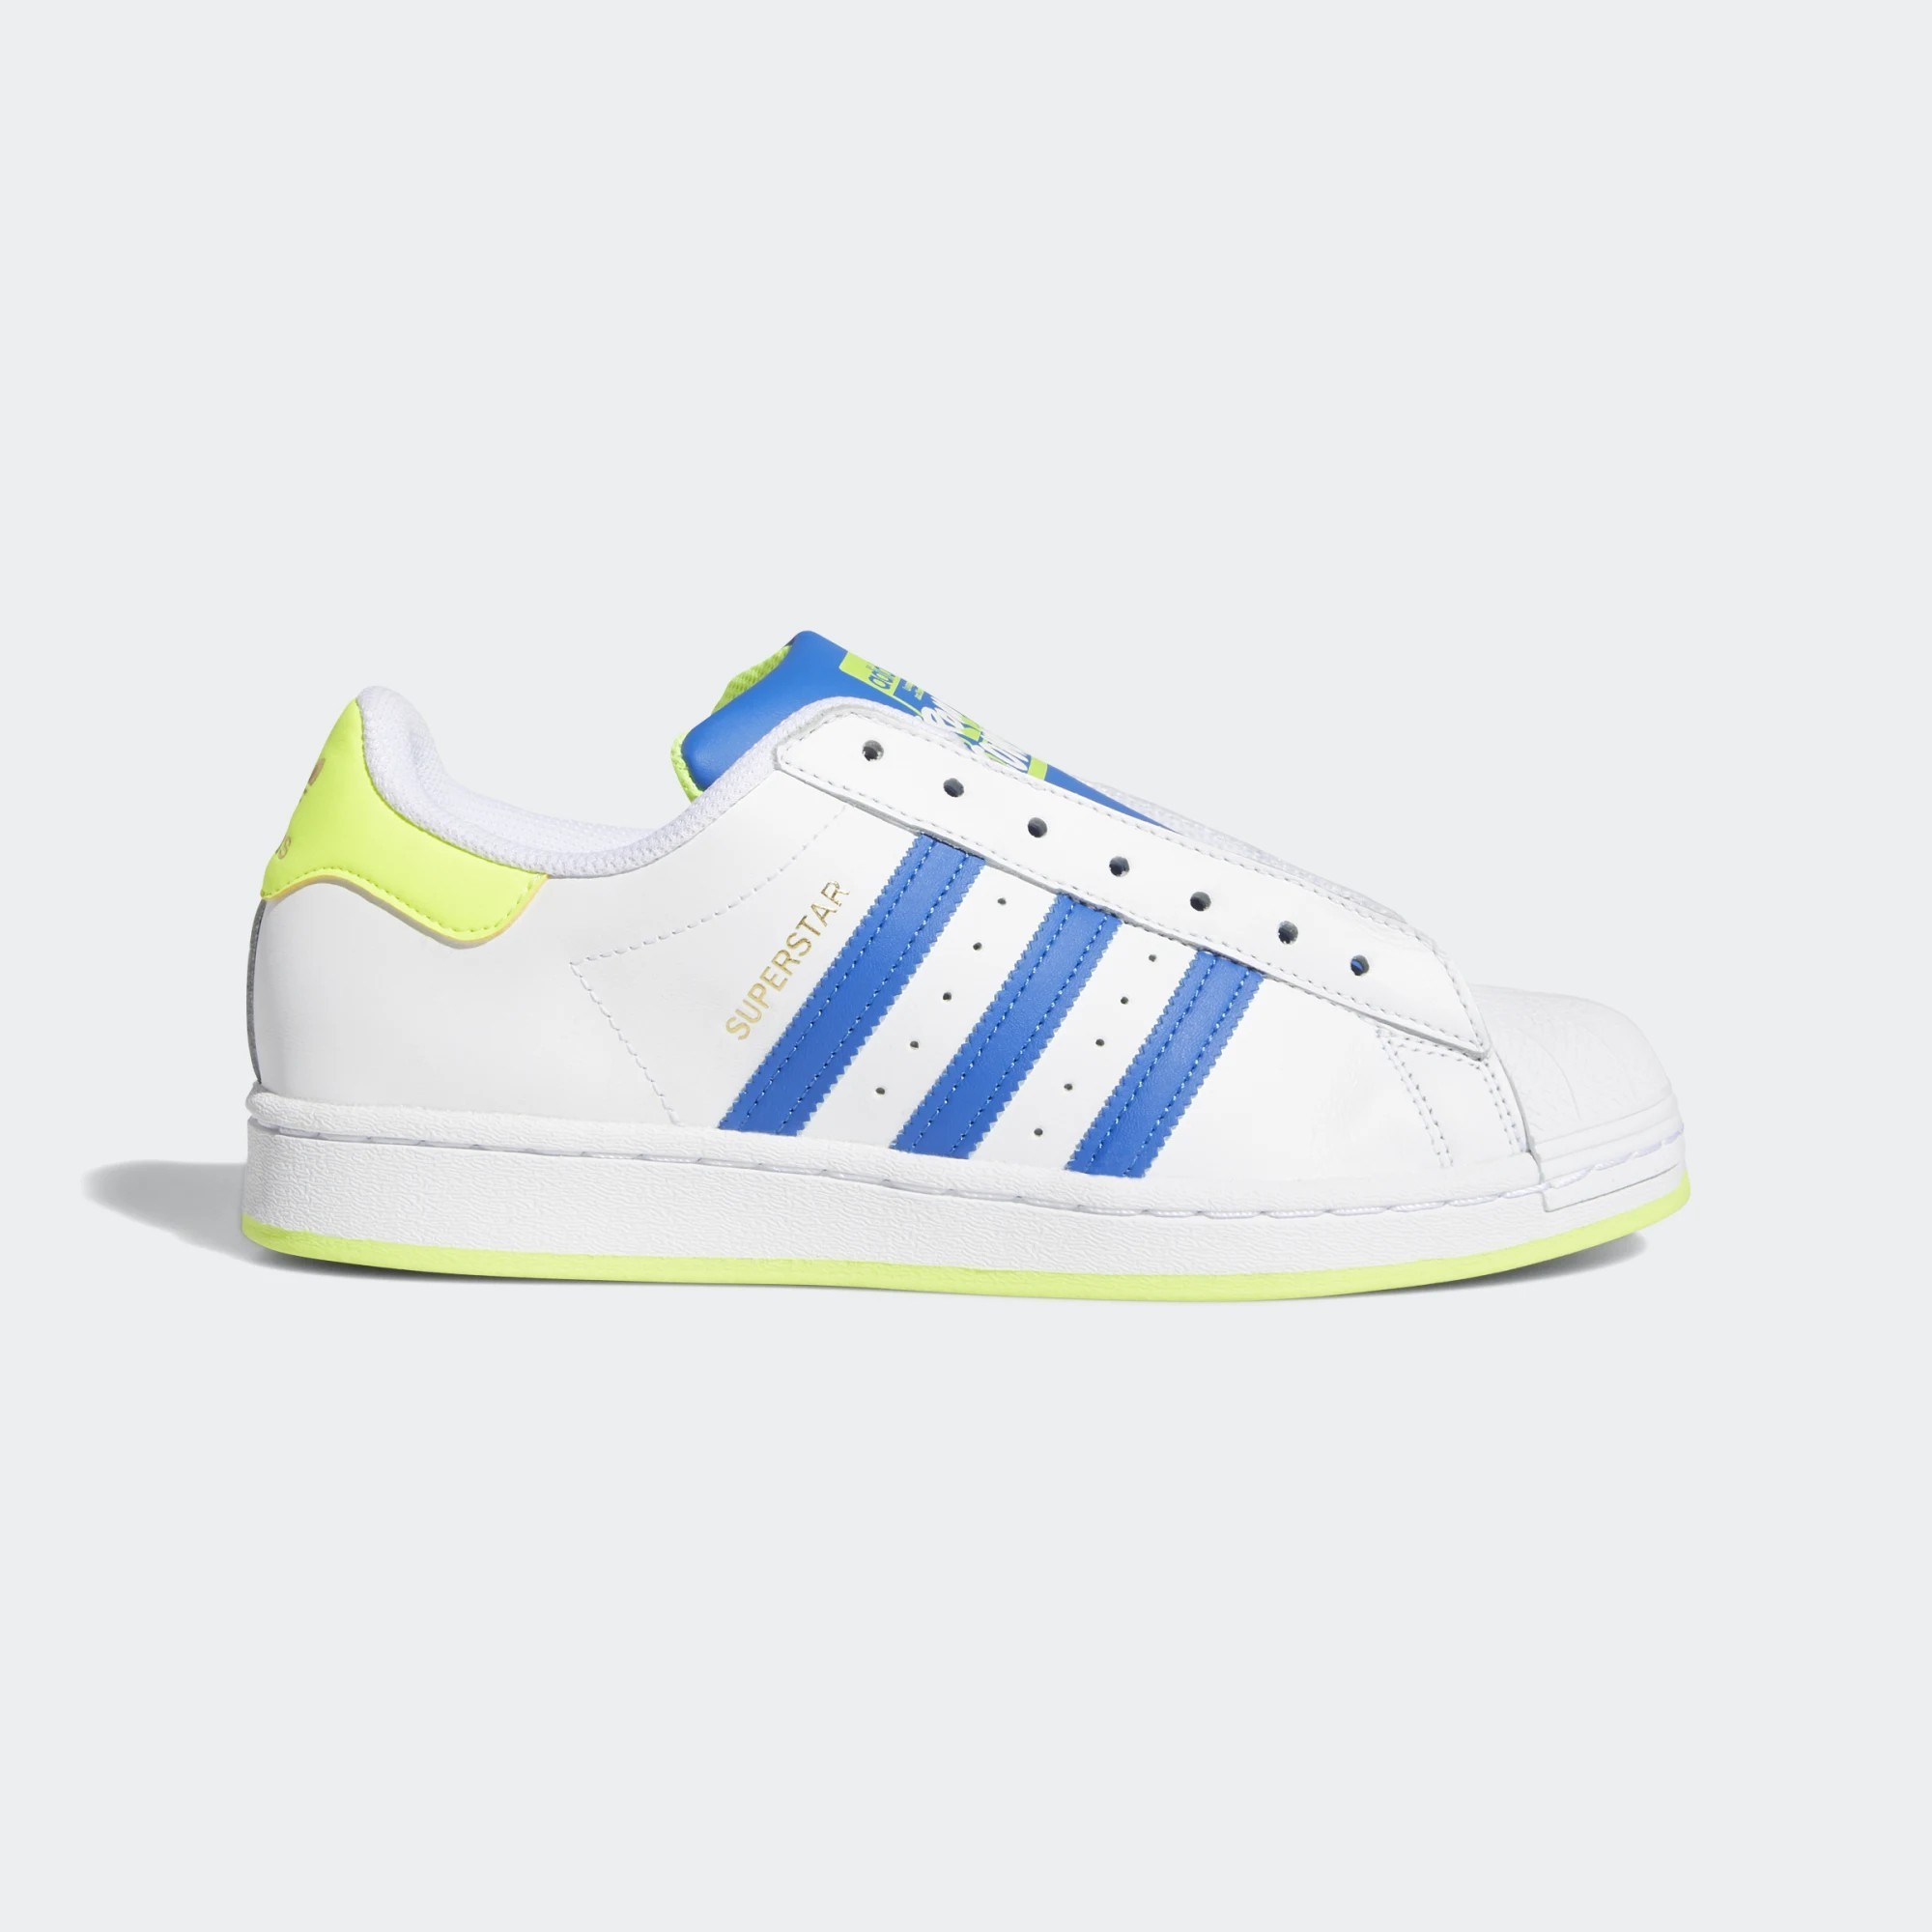 adidas Superstar Laceless Shoes - White FV3020